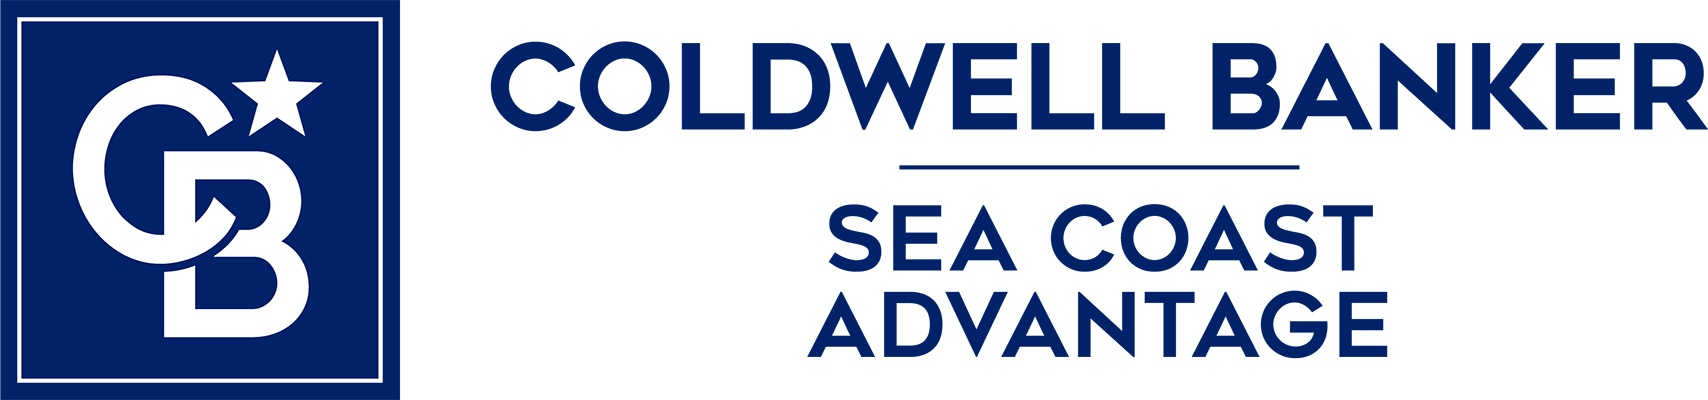 Alex Paen - Coldwell Banker Sea Coast Advantage Realty Logo